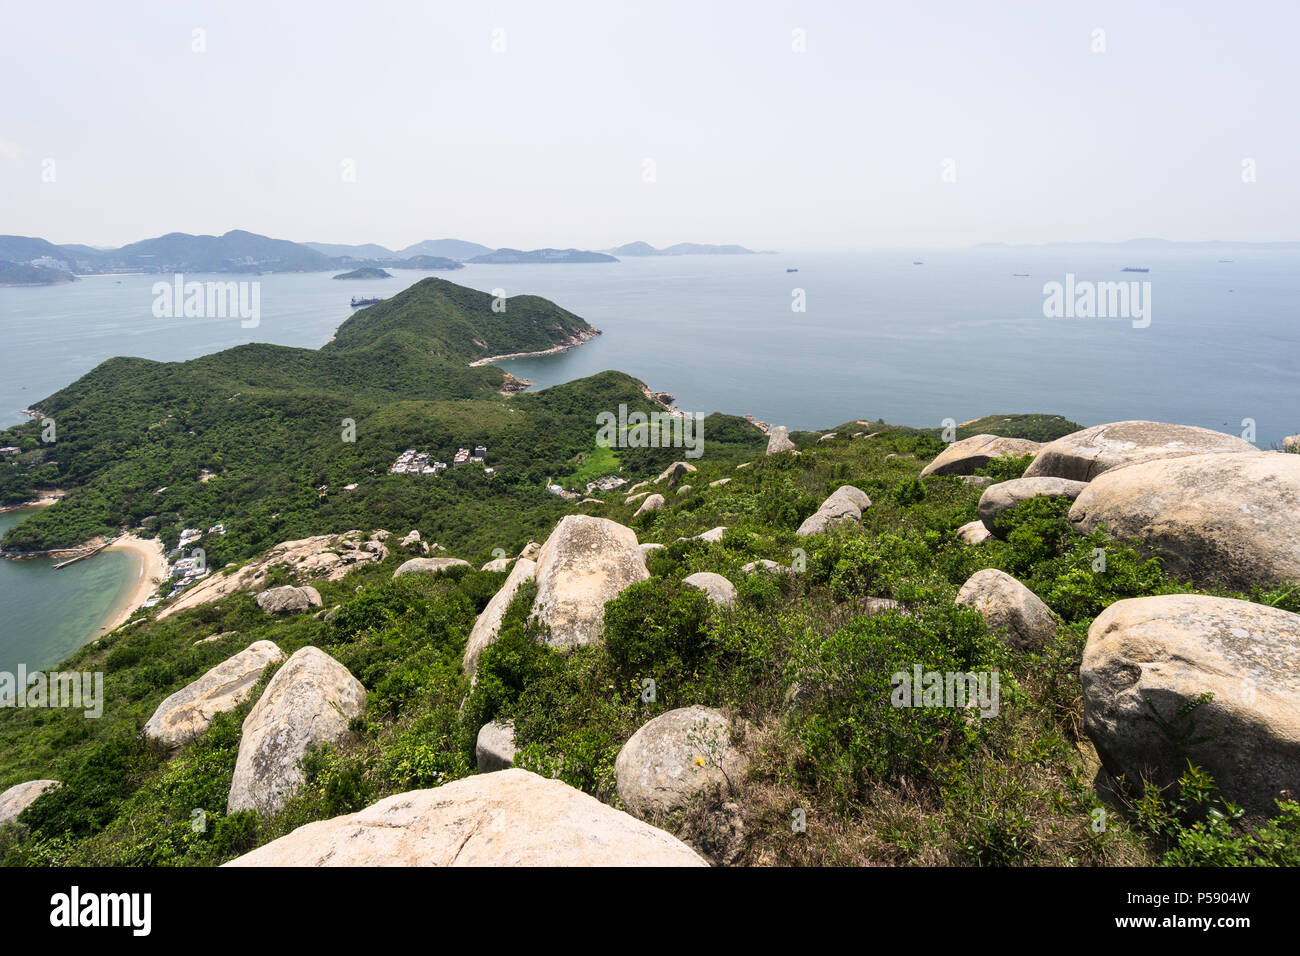 Stunning view of the rugged coastline of Lamma island with Hong Kong island in the background in Hong Kong, China SAR - Stock Image